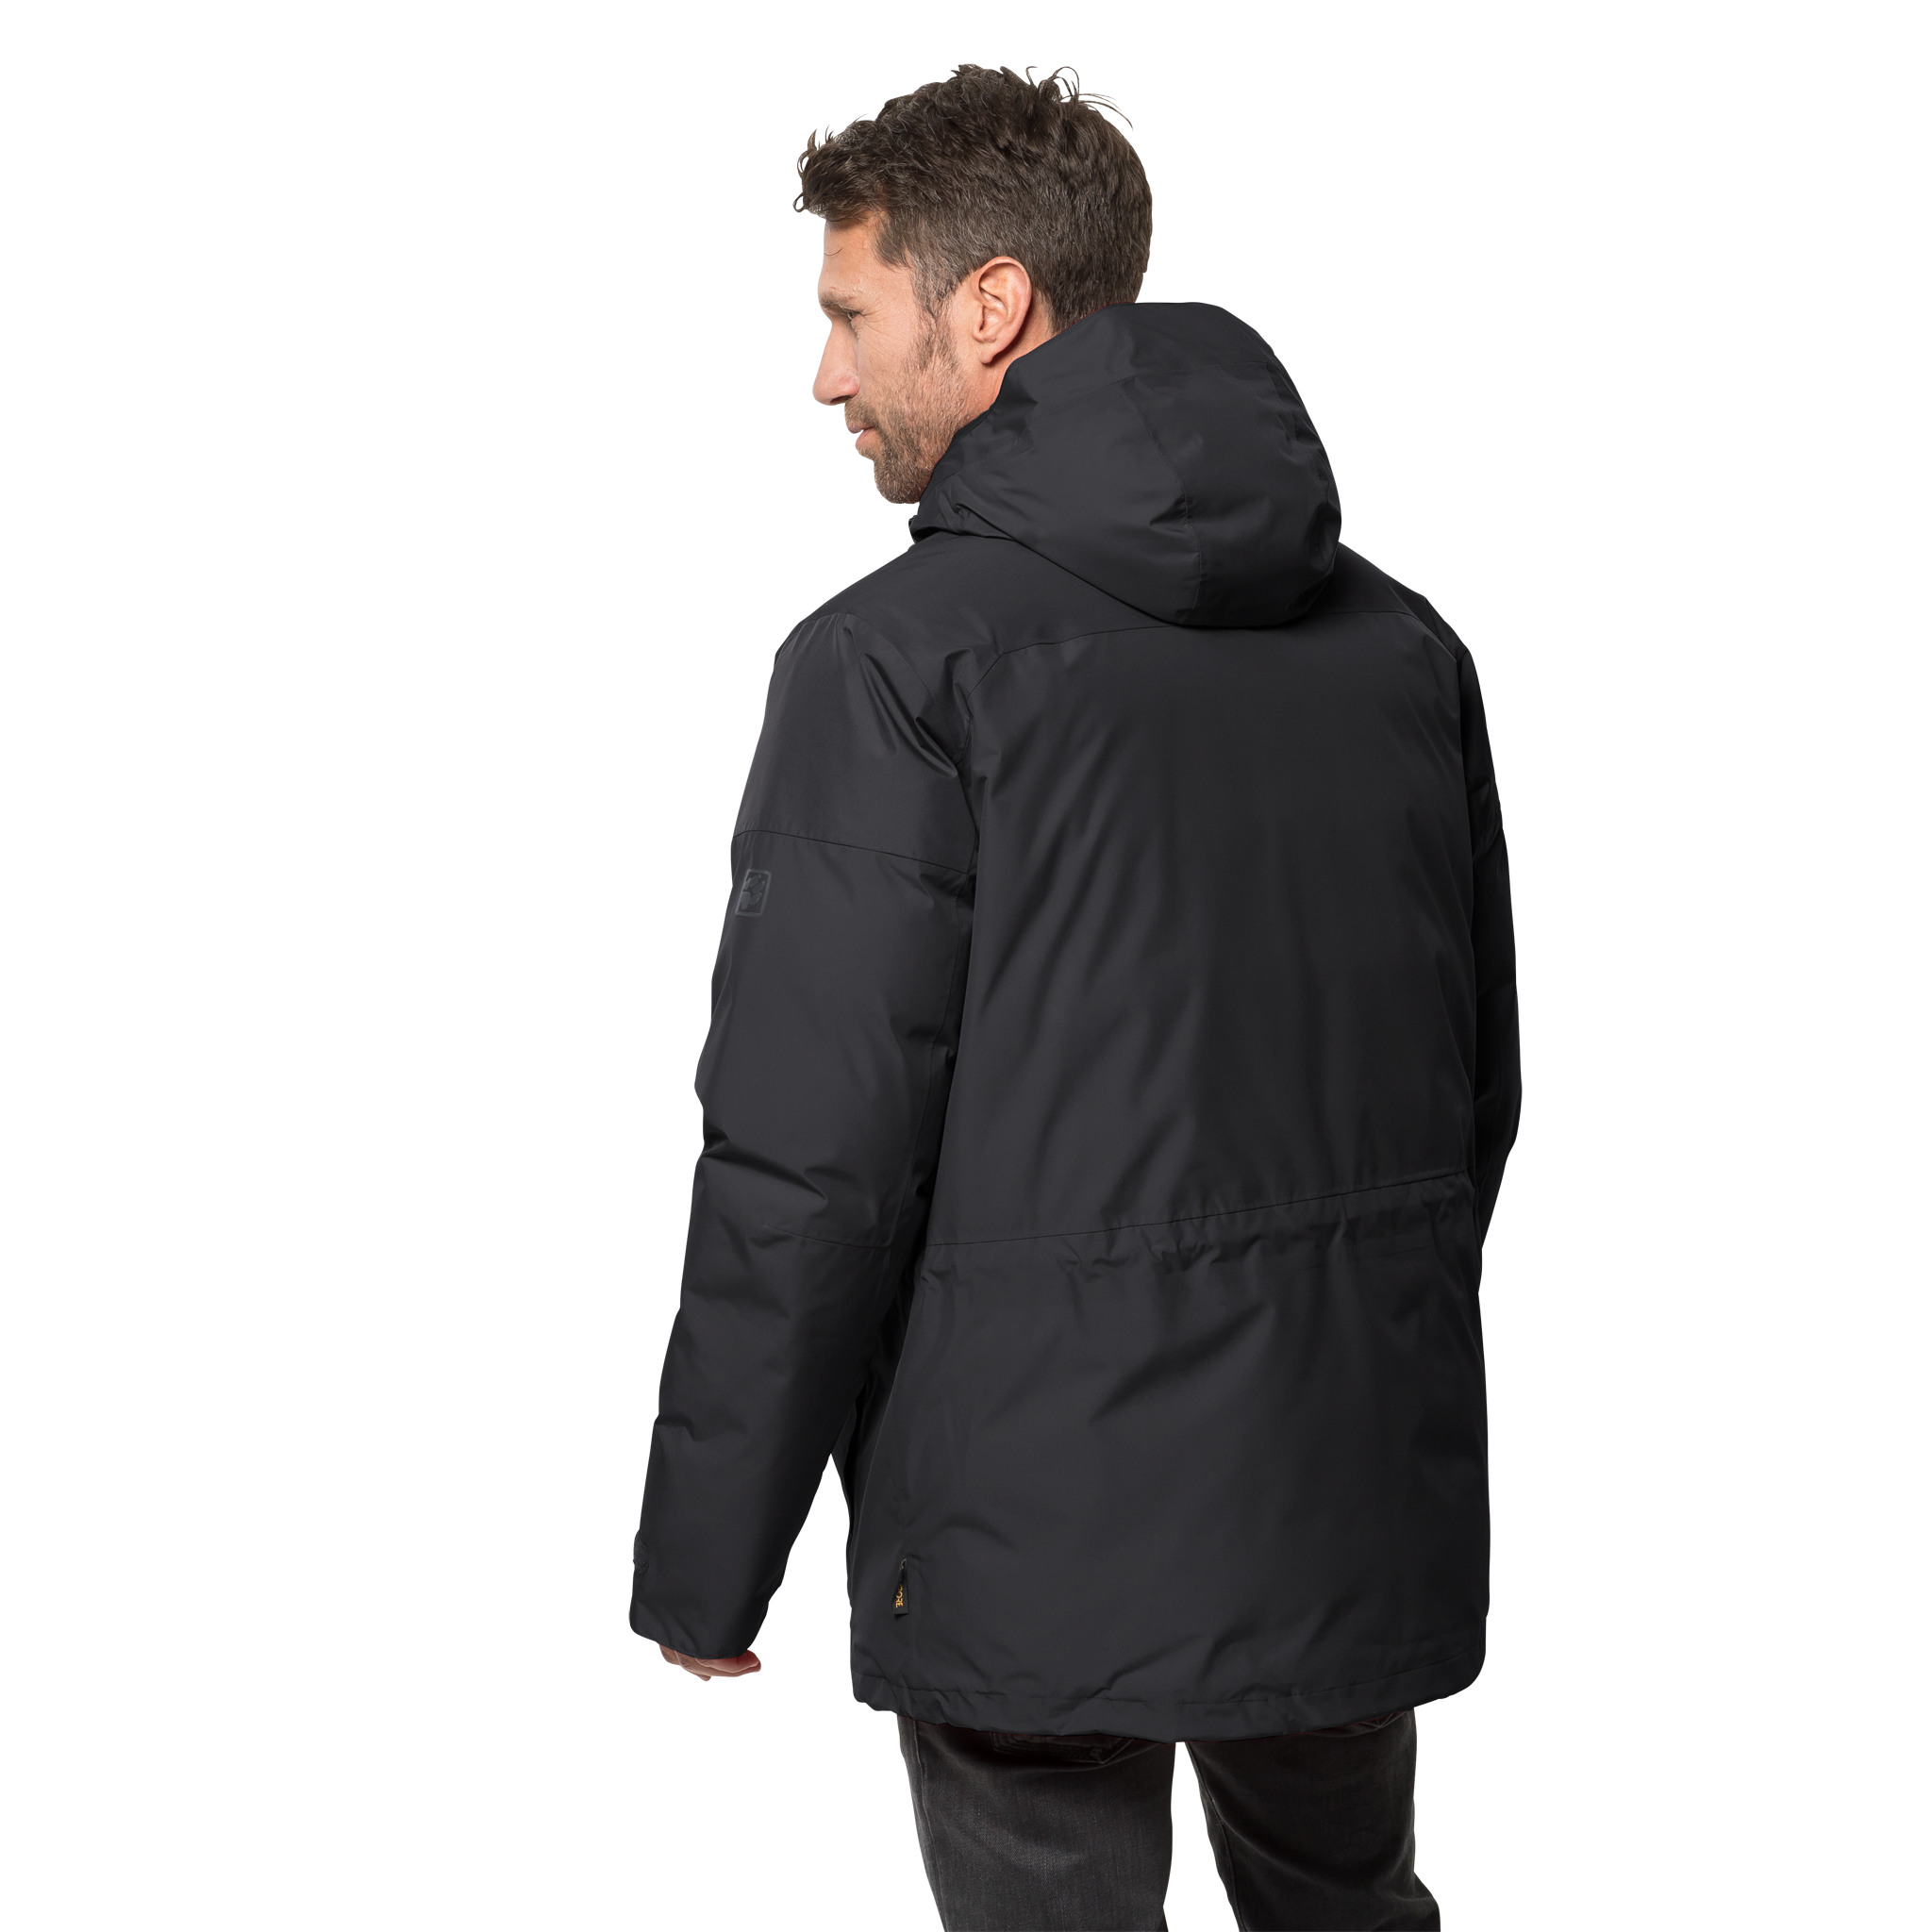 Куртка мужская NORTH ICE PARKA Jack Wolfskin — фото 3